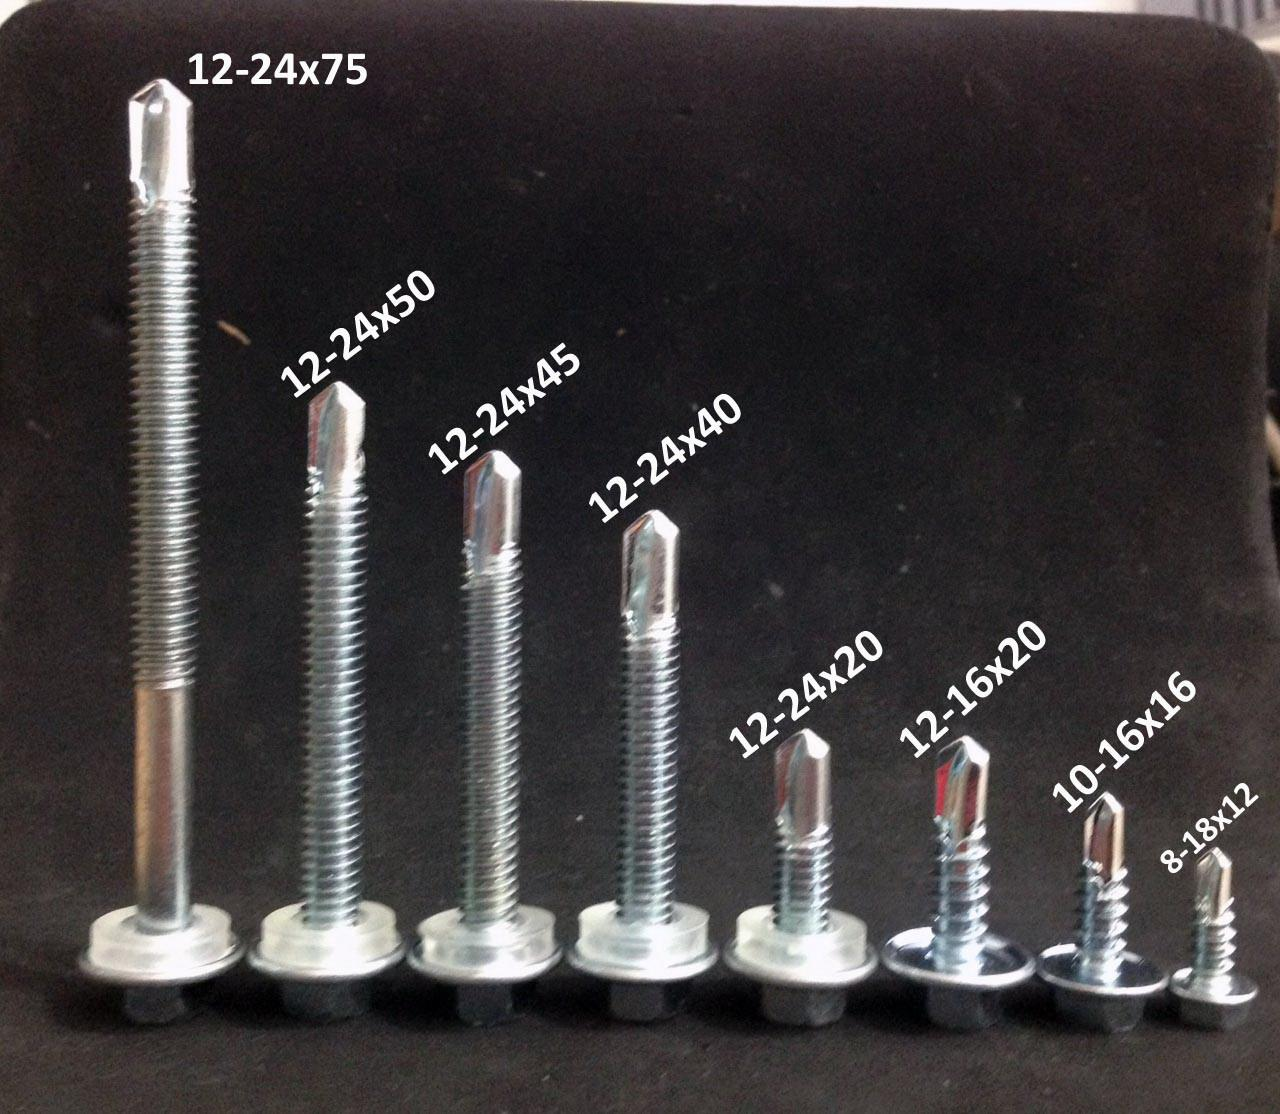 Sell Self Drilling Screw From Indonesia By Toko